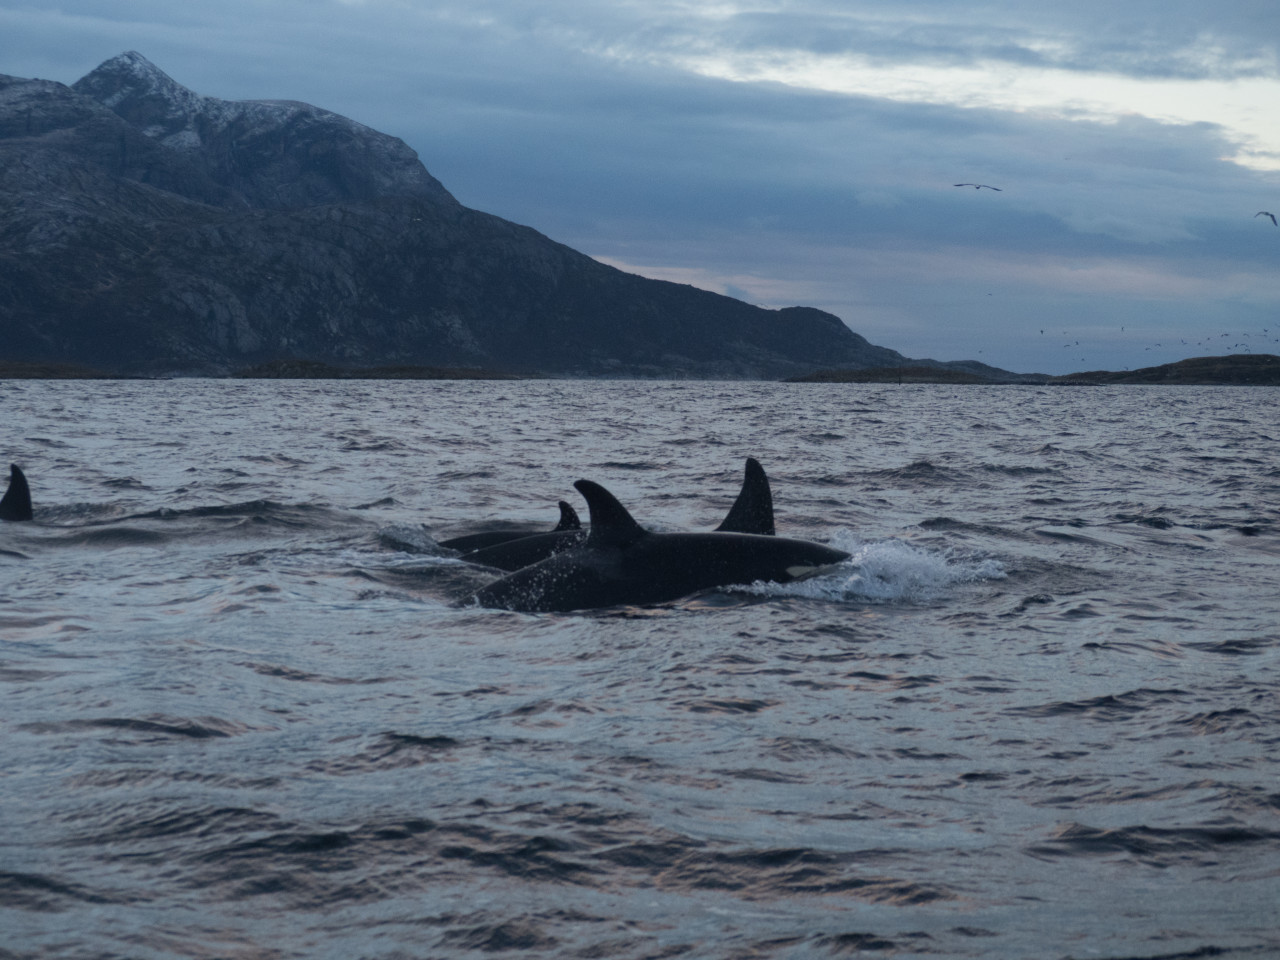 Pod of orcas traveling together